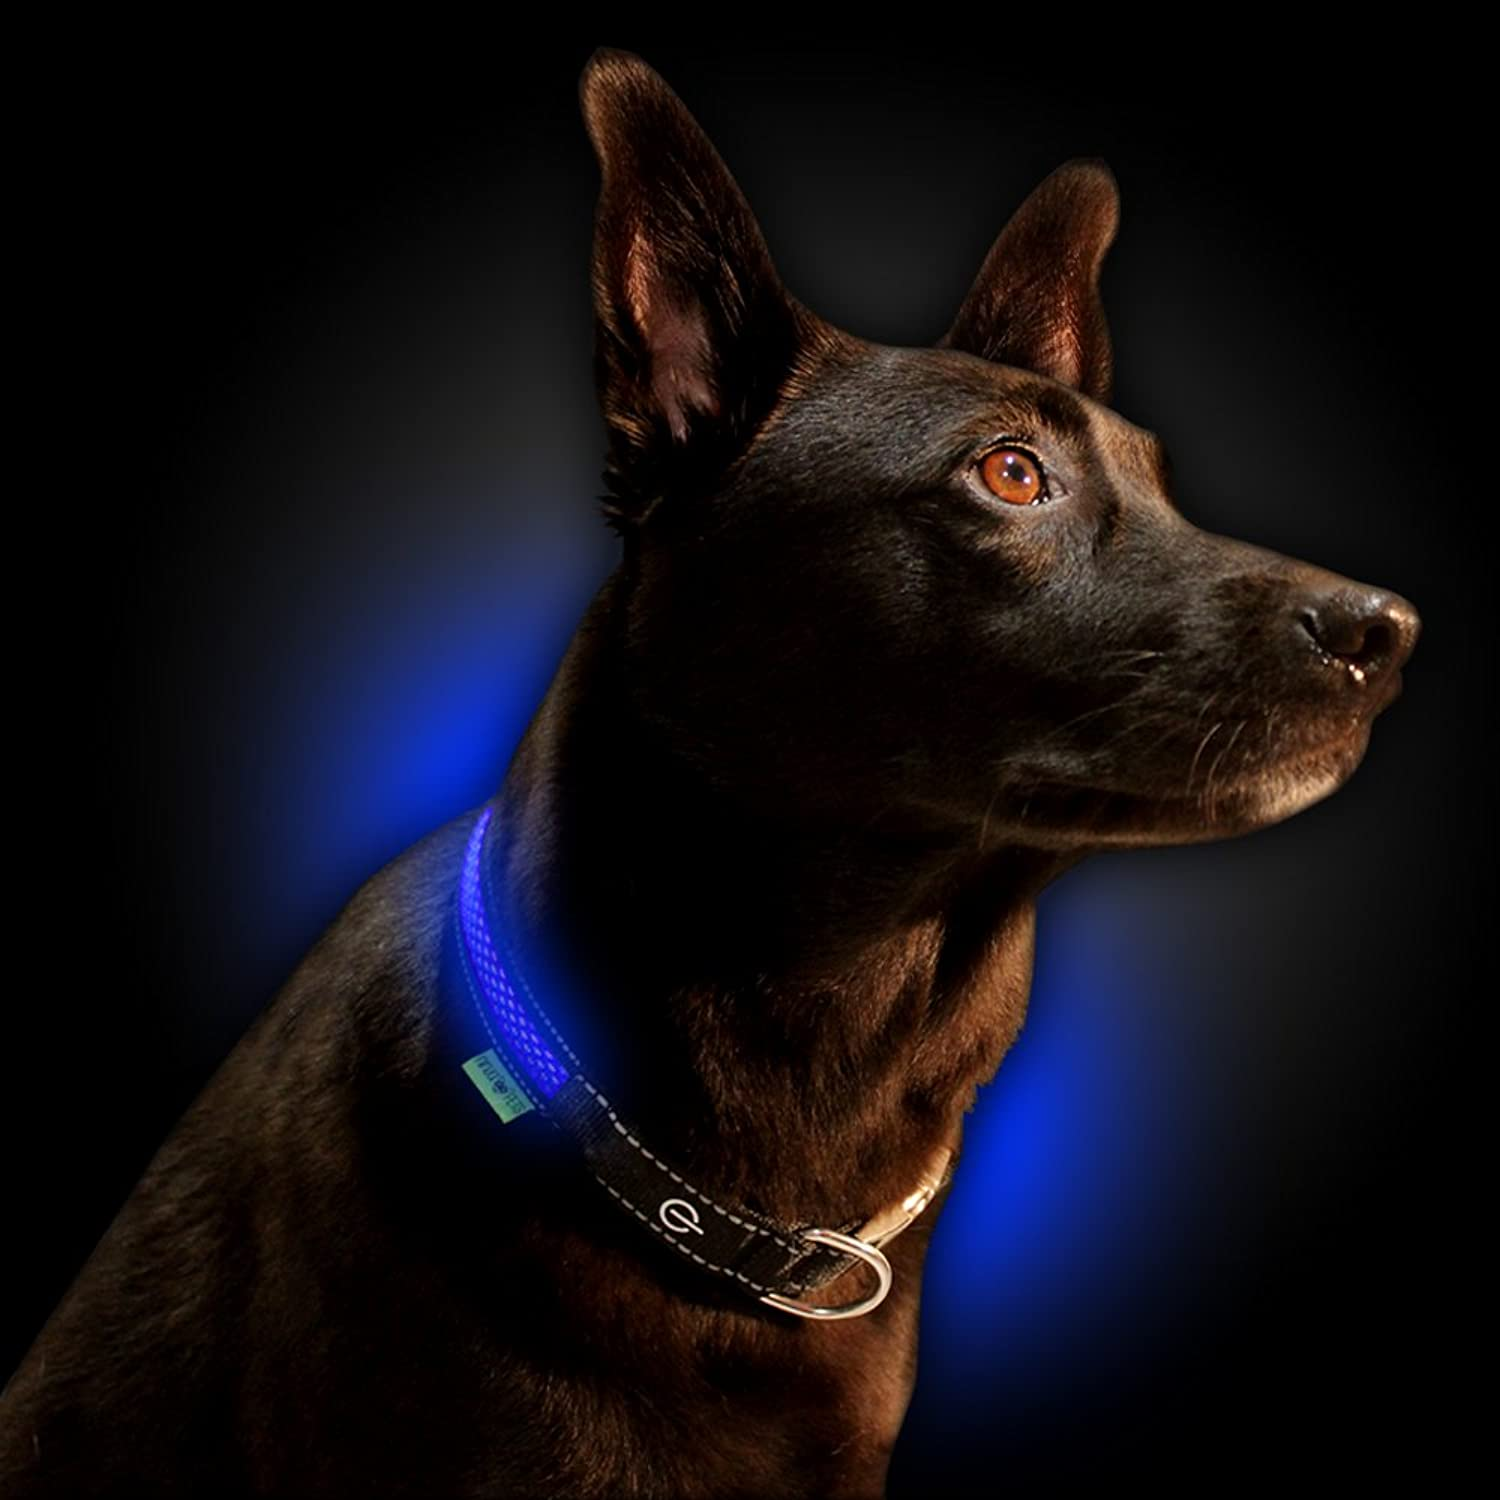 NINJA PETS Metal Buckle LED Dog Collar, USB ricaricabile, per Small Medium Large Dogs, Dog Collar Lights for Night Time Safety, Quick Release (Large, Royal Blue)